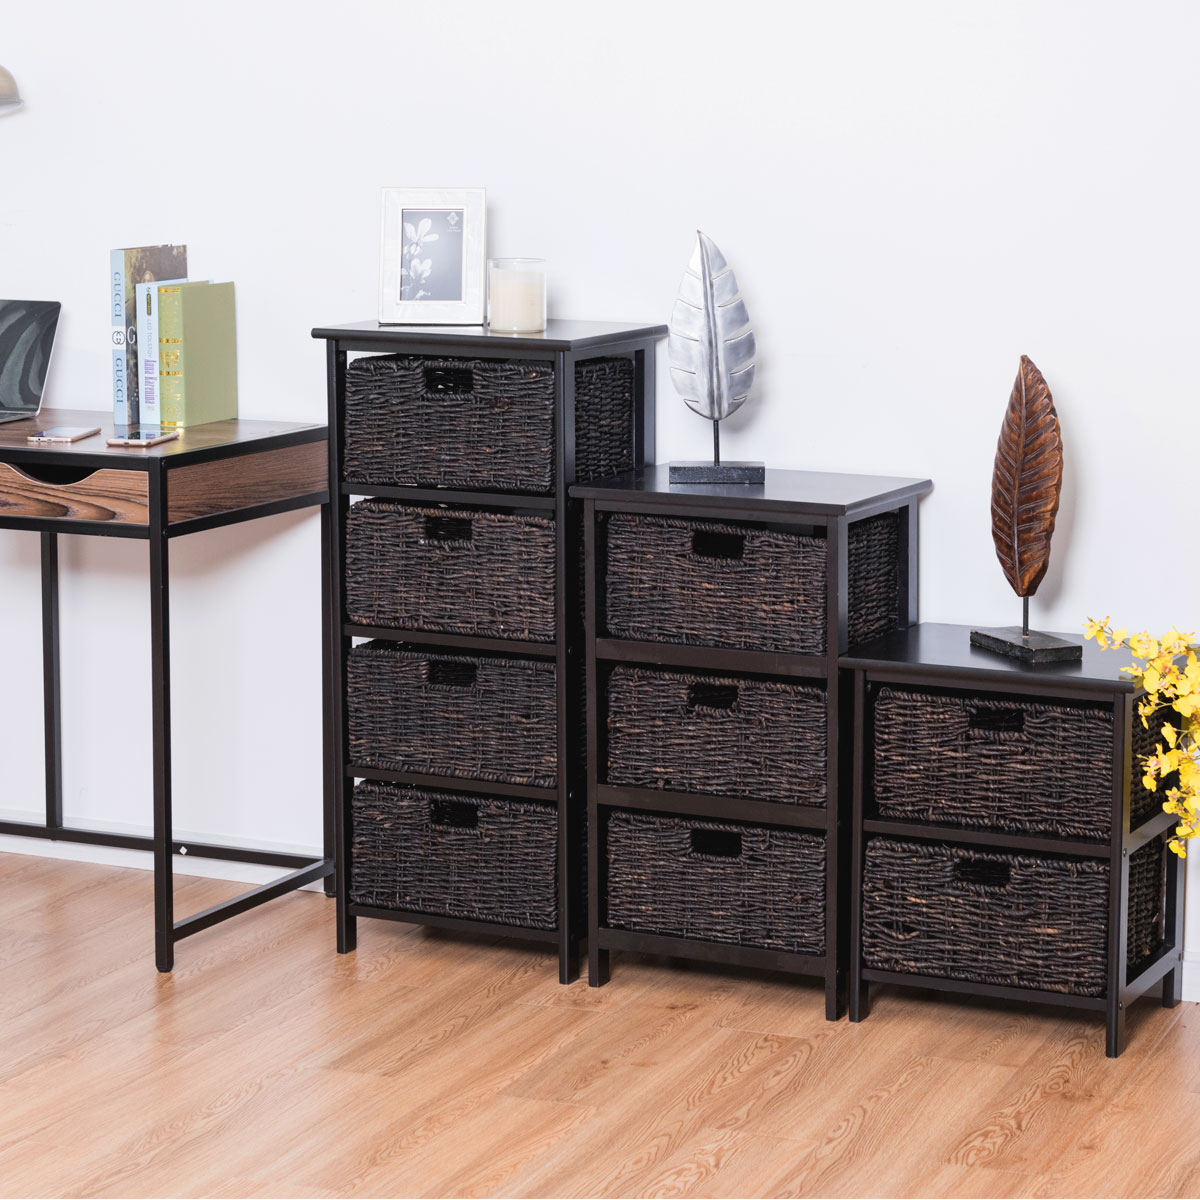 way wooden end accent storage table home office furniture decor baskets treasure chest black trestle diy wood coffee outdoor battery lamps grey wingback chair target windham